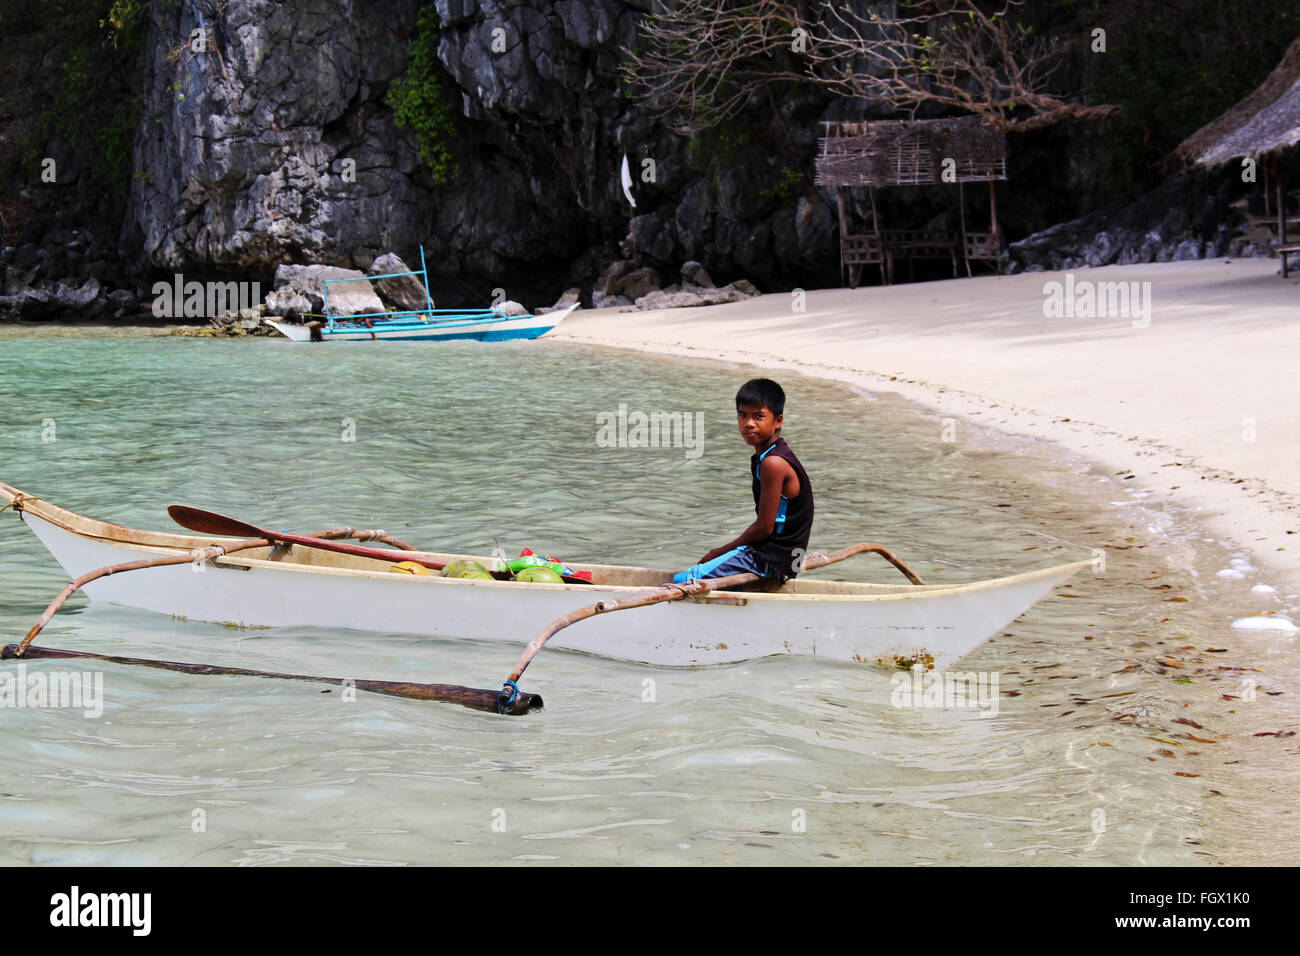 PALAWAN/PHILIPPINES - CIRCA DECEMBER 2015: Local boy on a typical filipino boat called balangay on one of the islands - Stock Image